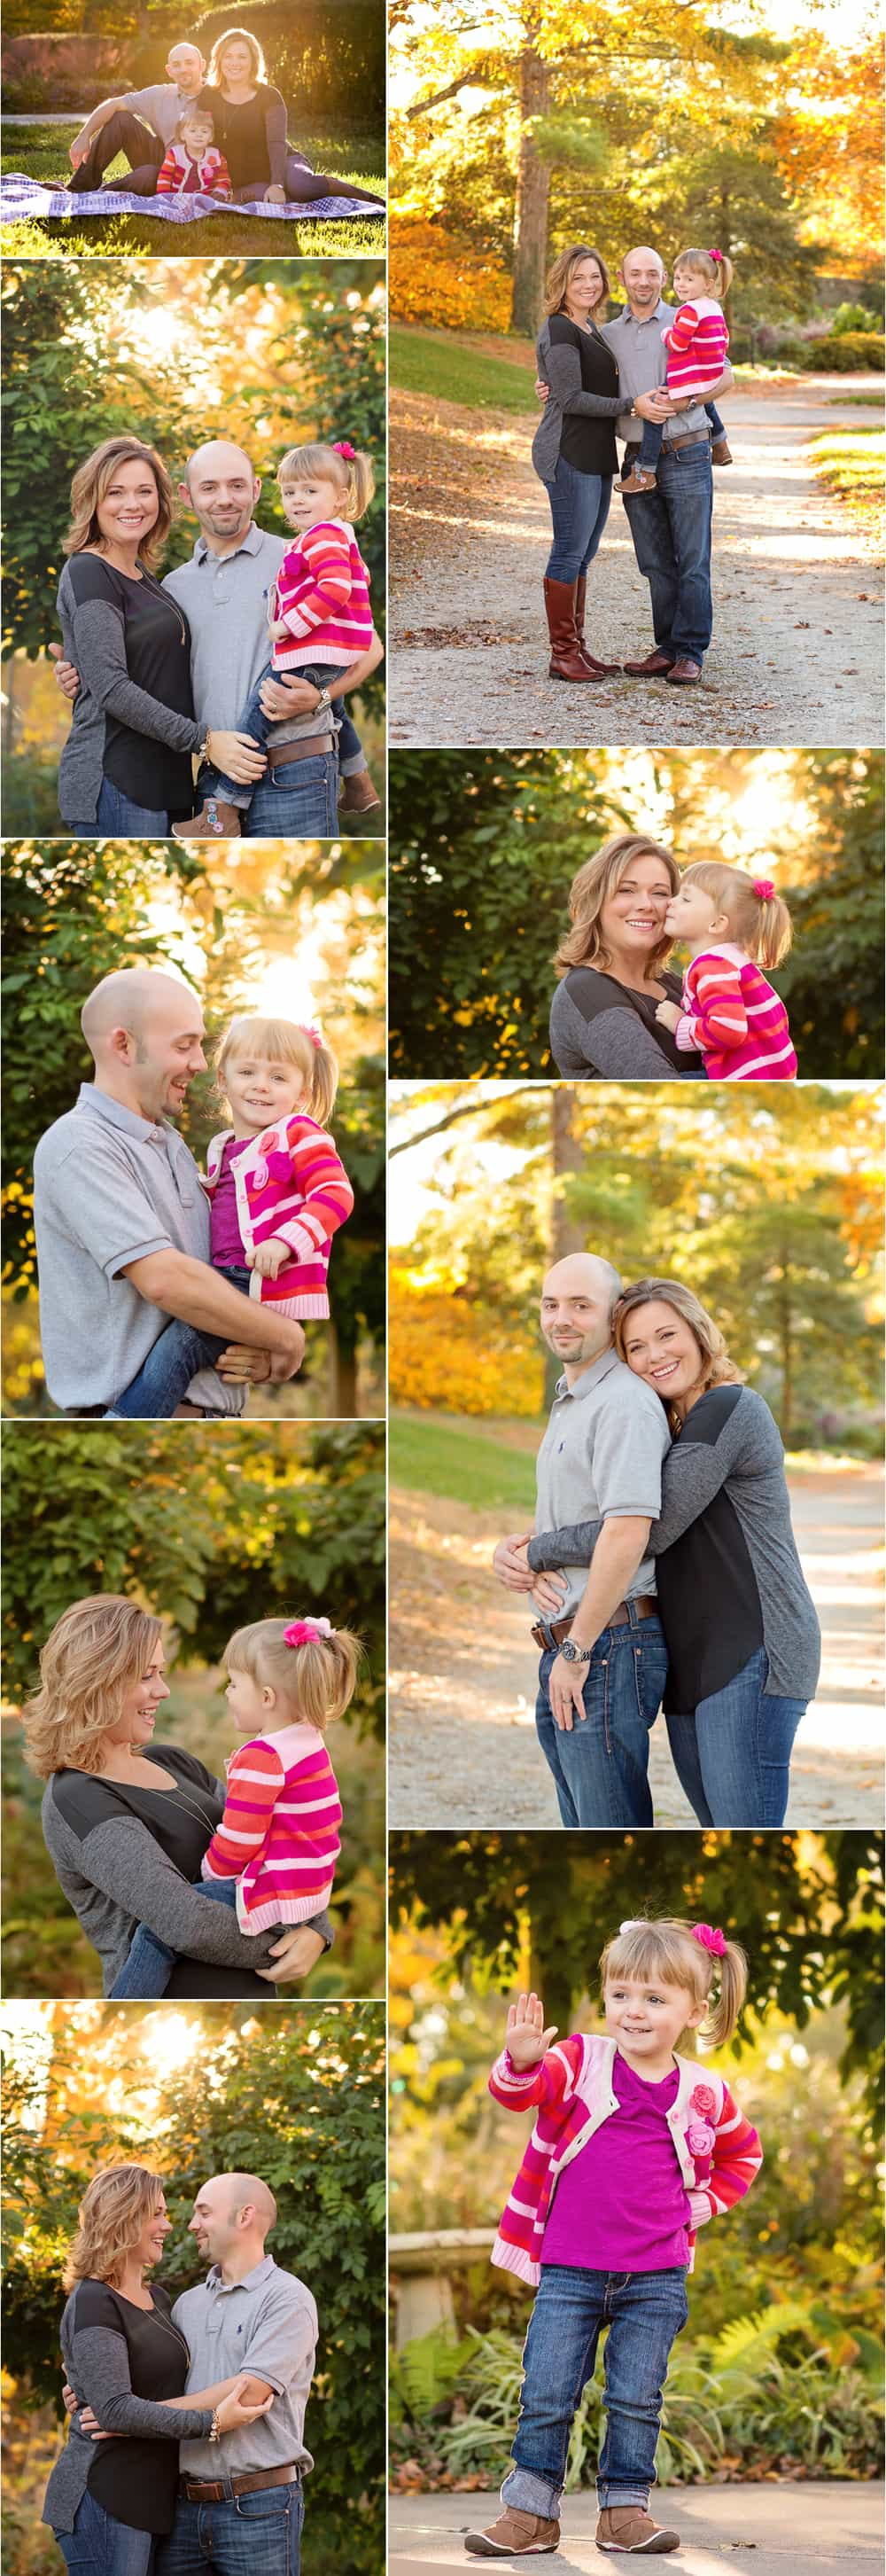 Wood Family storyboard from photo session at Ault Park